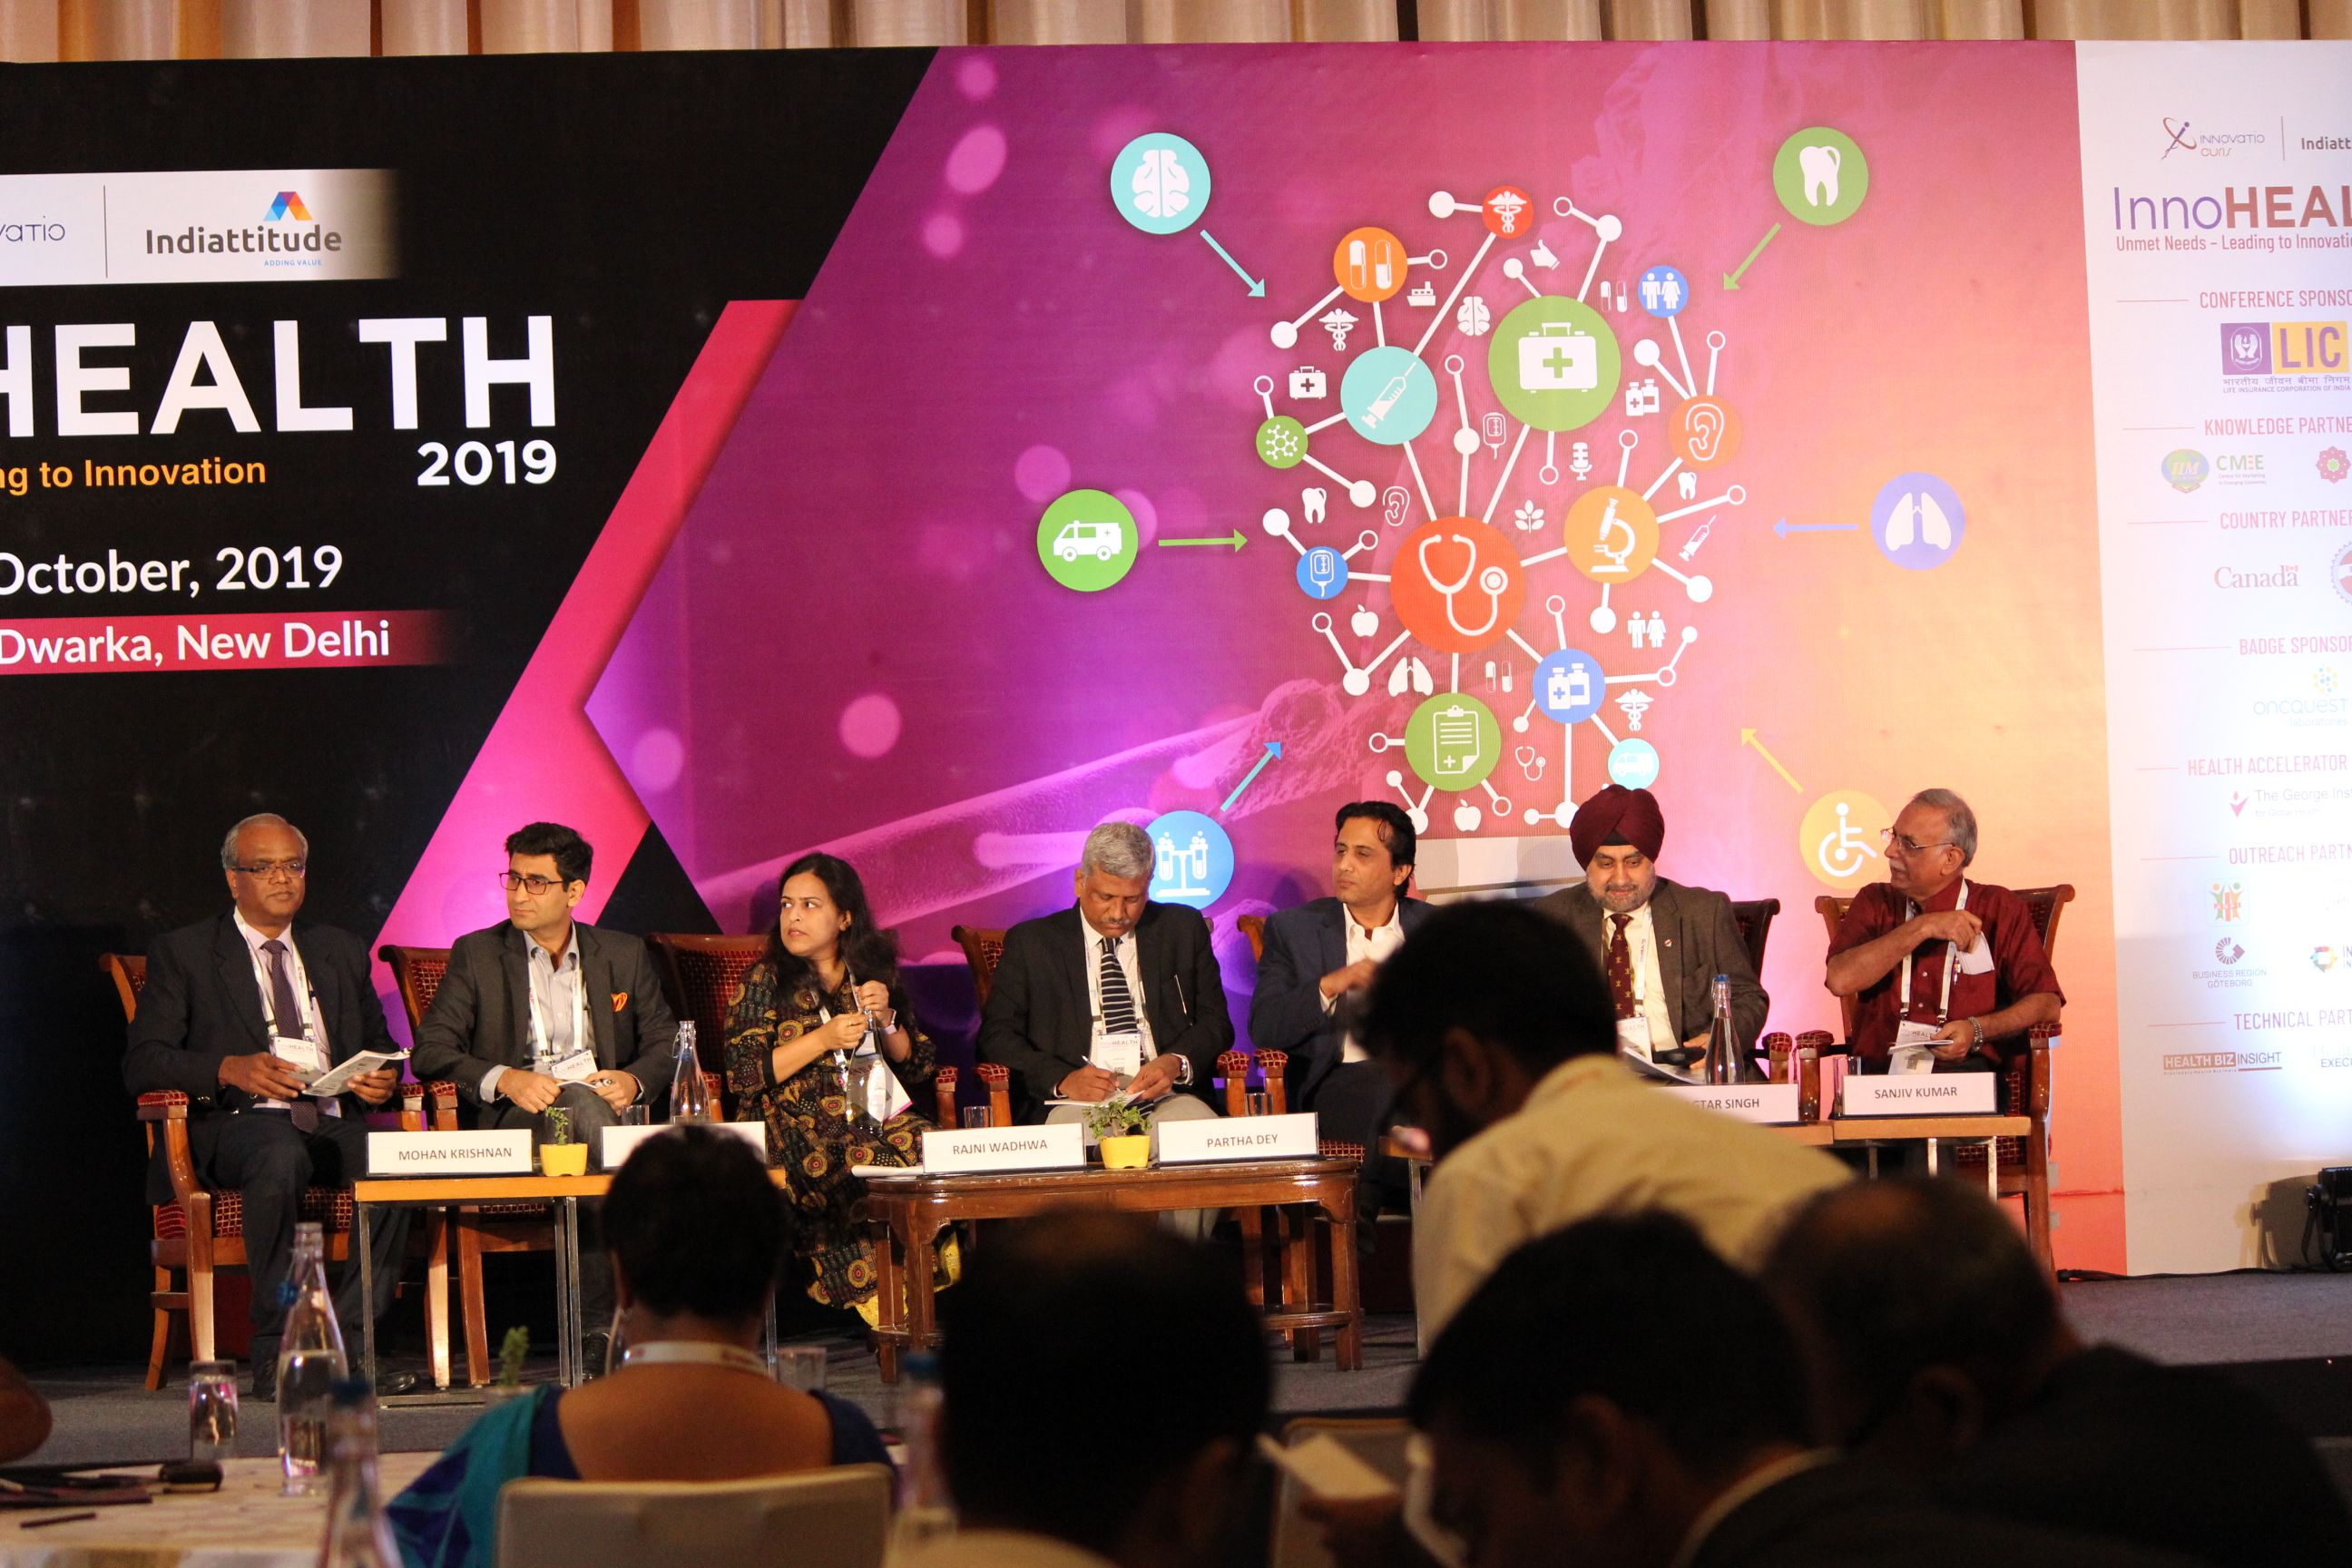 Panelists at Session 2InnoHEALTH 2019